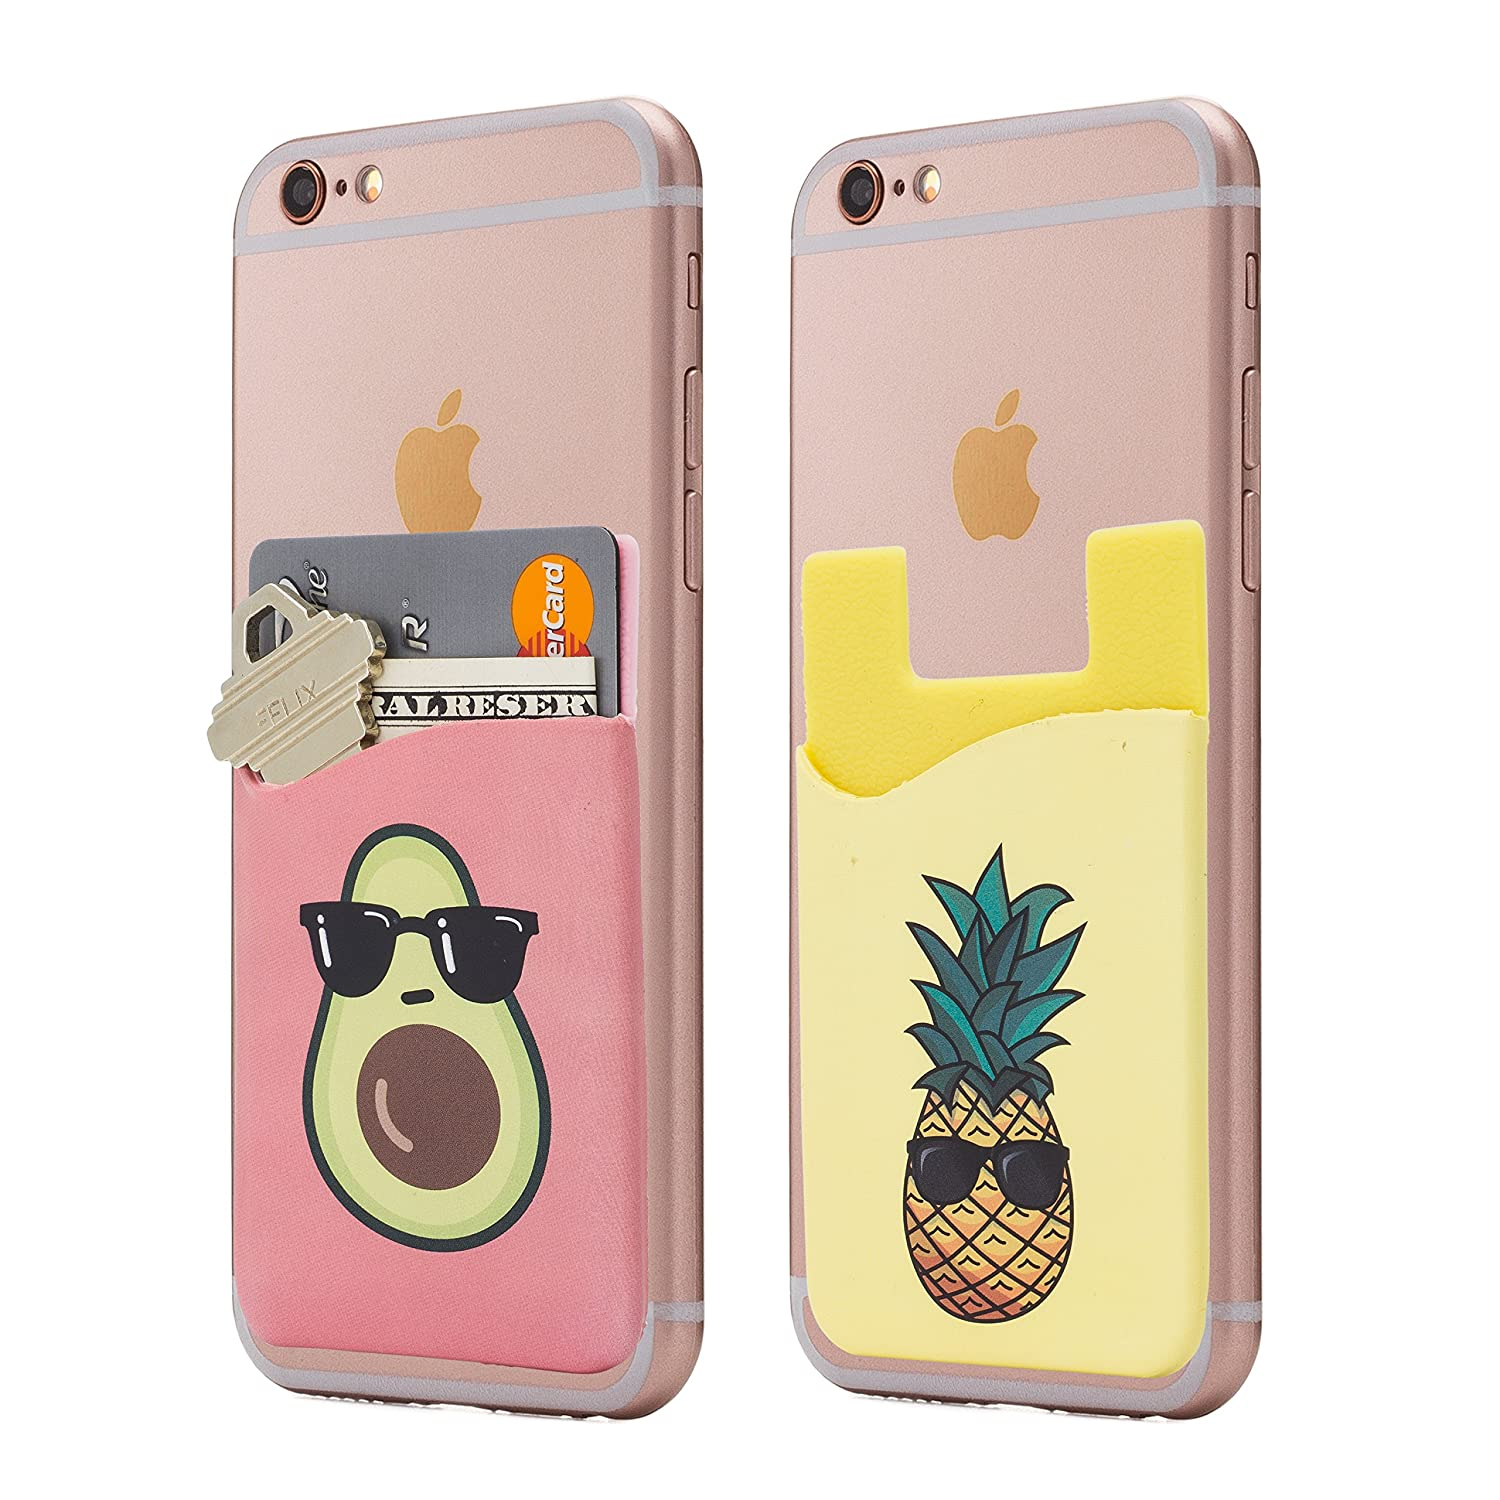 (Two) Avocado and Pineapple Cell Phone Stick on Wallet Card Holder Phone Pocket for iPhone, Android and All Smartphones. Cardly